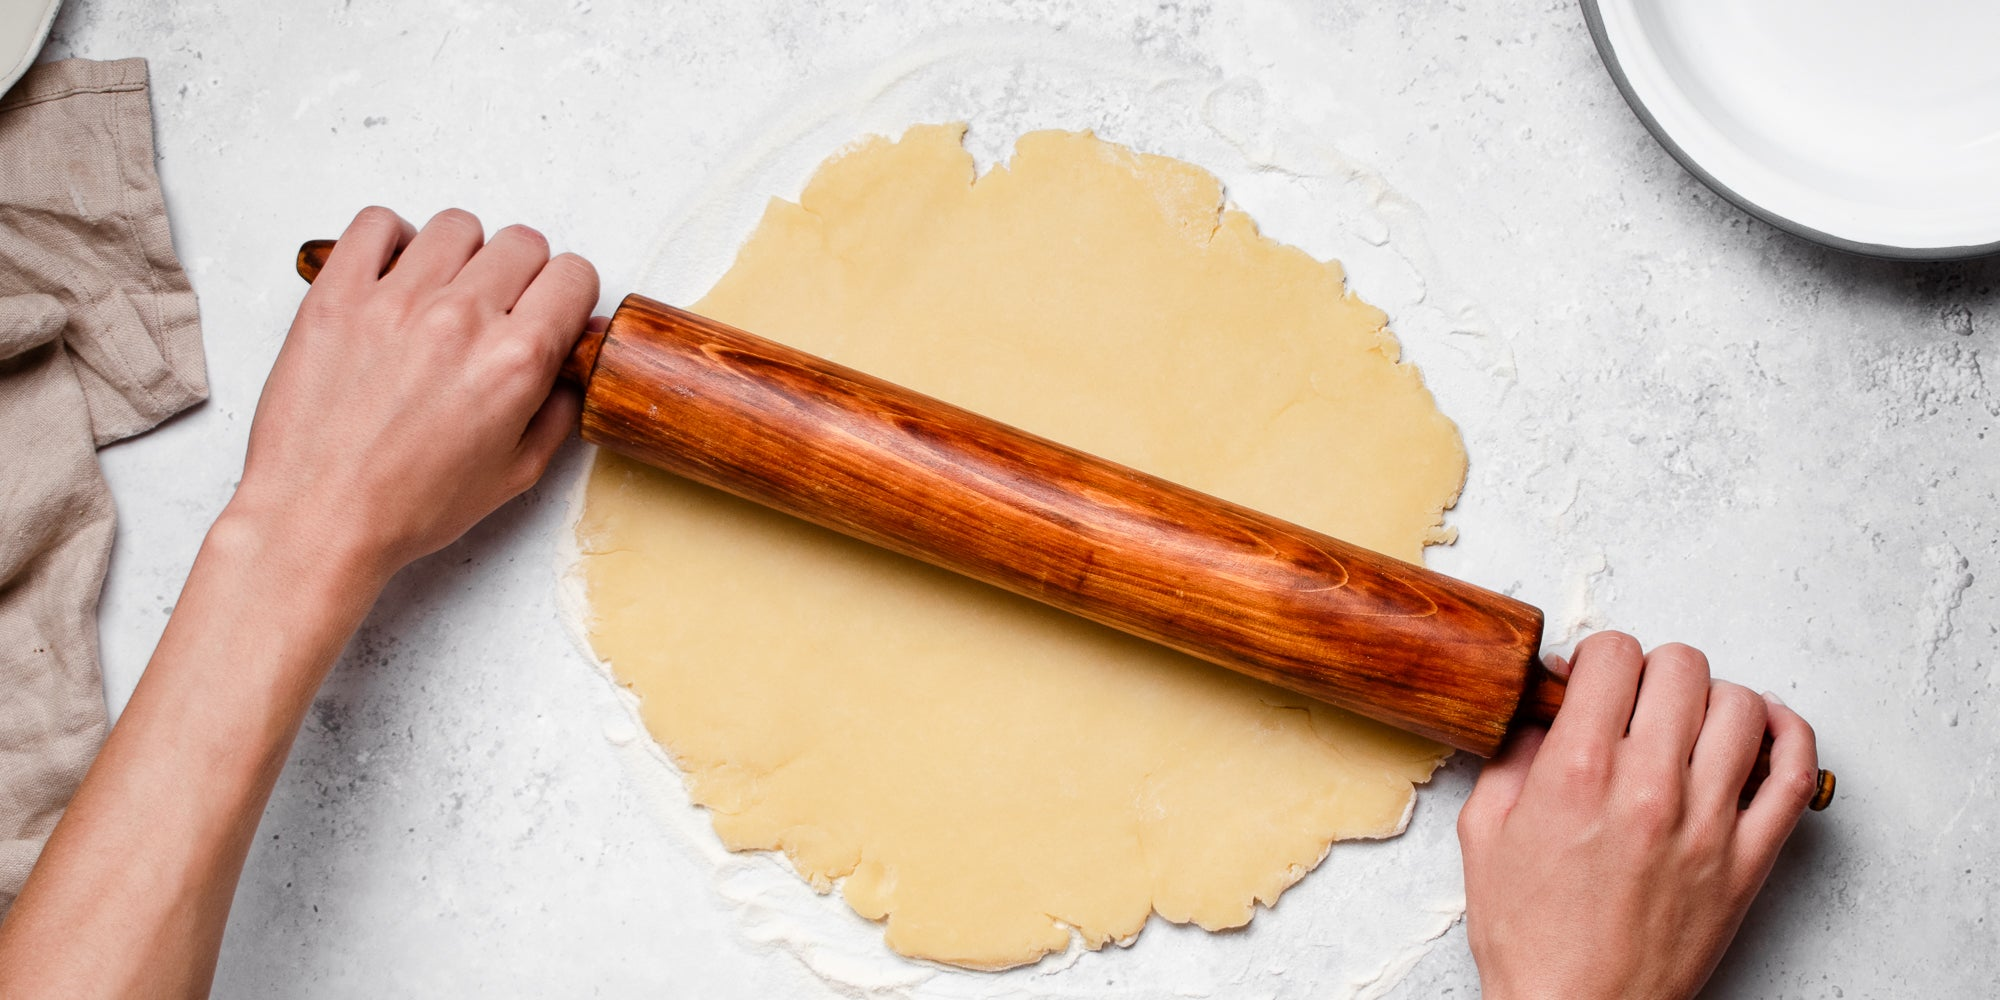 Shortcrust Pastry being rolled out onto a surface with hands holding a wooden rolling pin